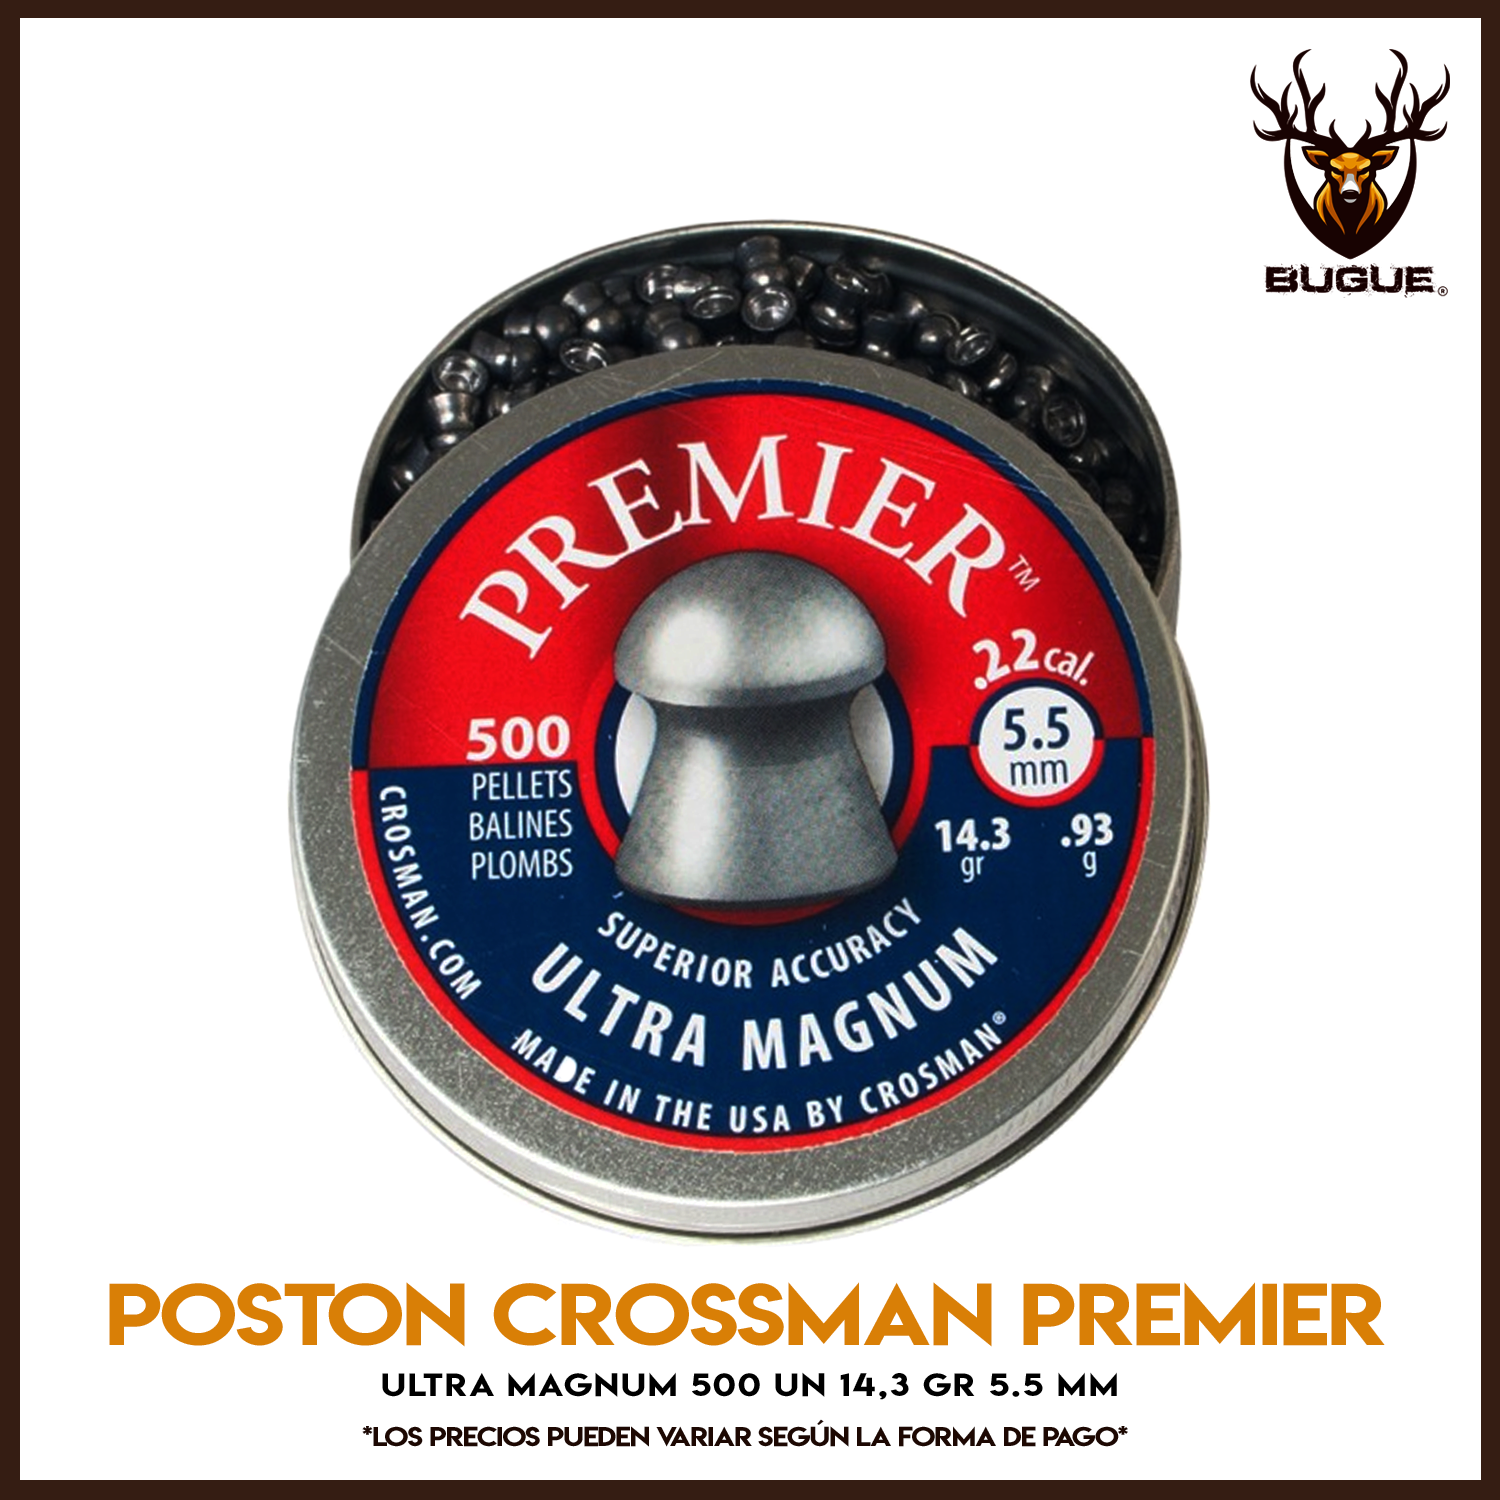 POSTON CROSSMAN PREMIER ULTRA MAGNUM 500 UN 14,3 GR 5.5 MM